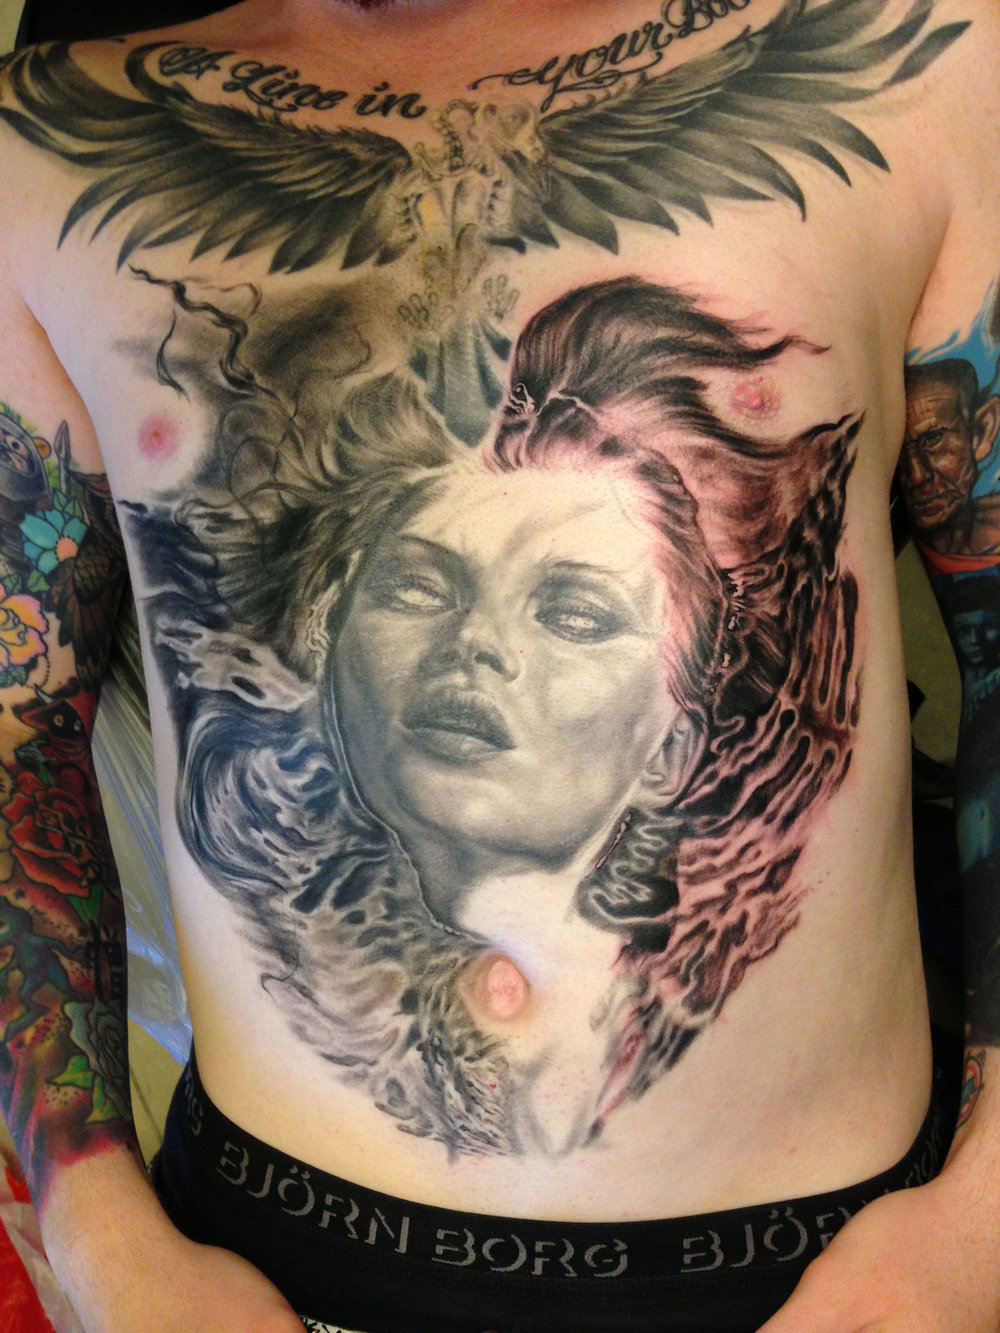 Black and Grey Drowned-Eyed Beauty Emerging from Water, torso tattoo in progress  (Bird and script on top are not mine, tattooed from another artist)